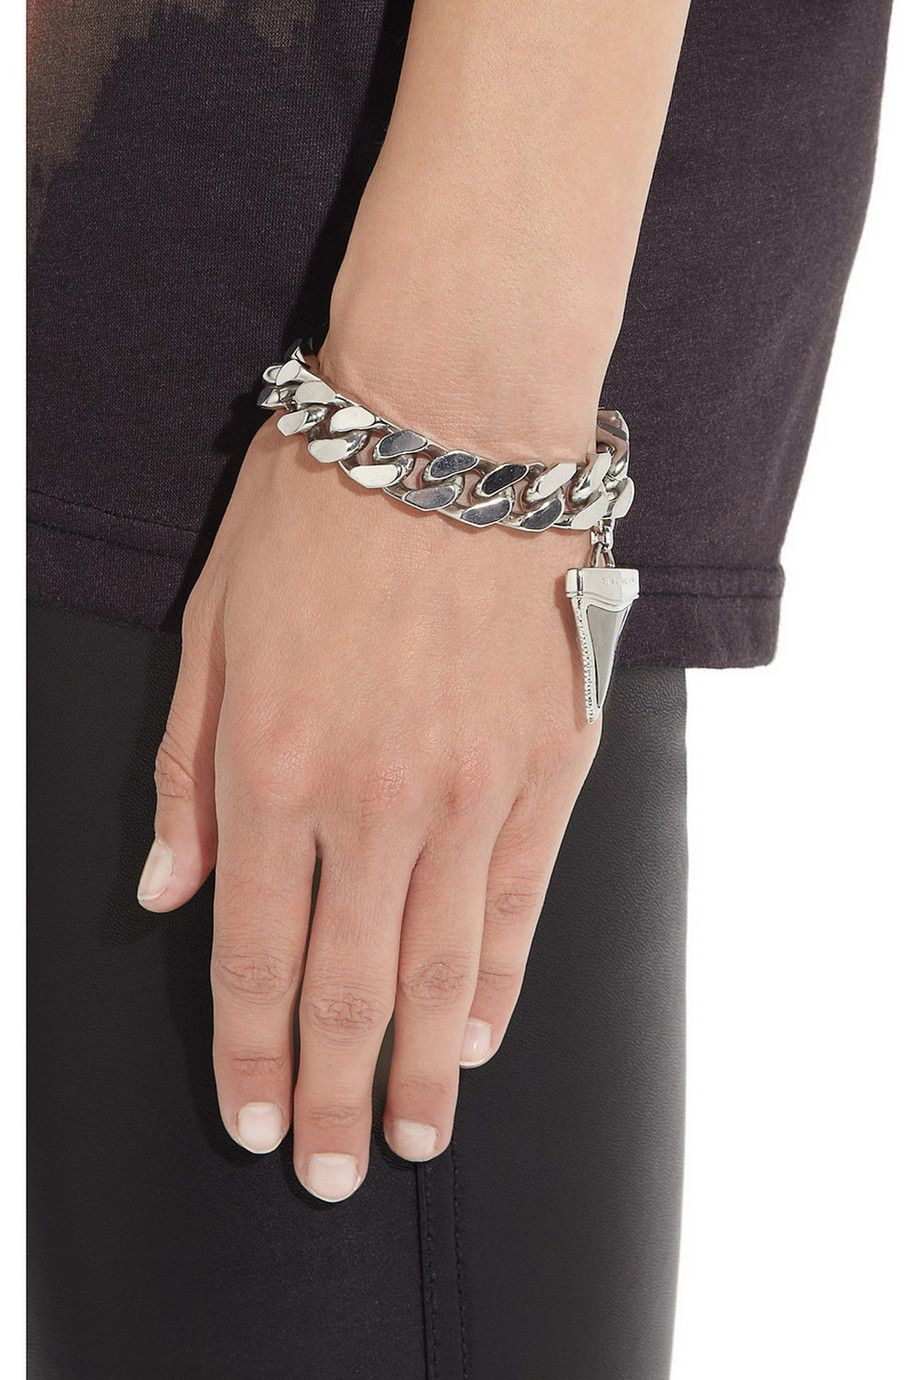 Givenchy Shark Tooth Bracelet In Silver Tone And Ruthenium Metal